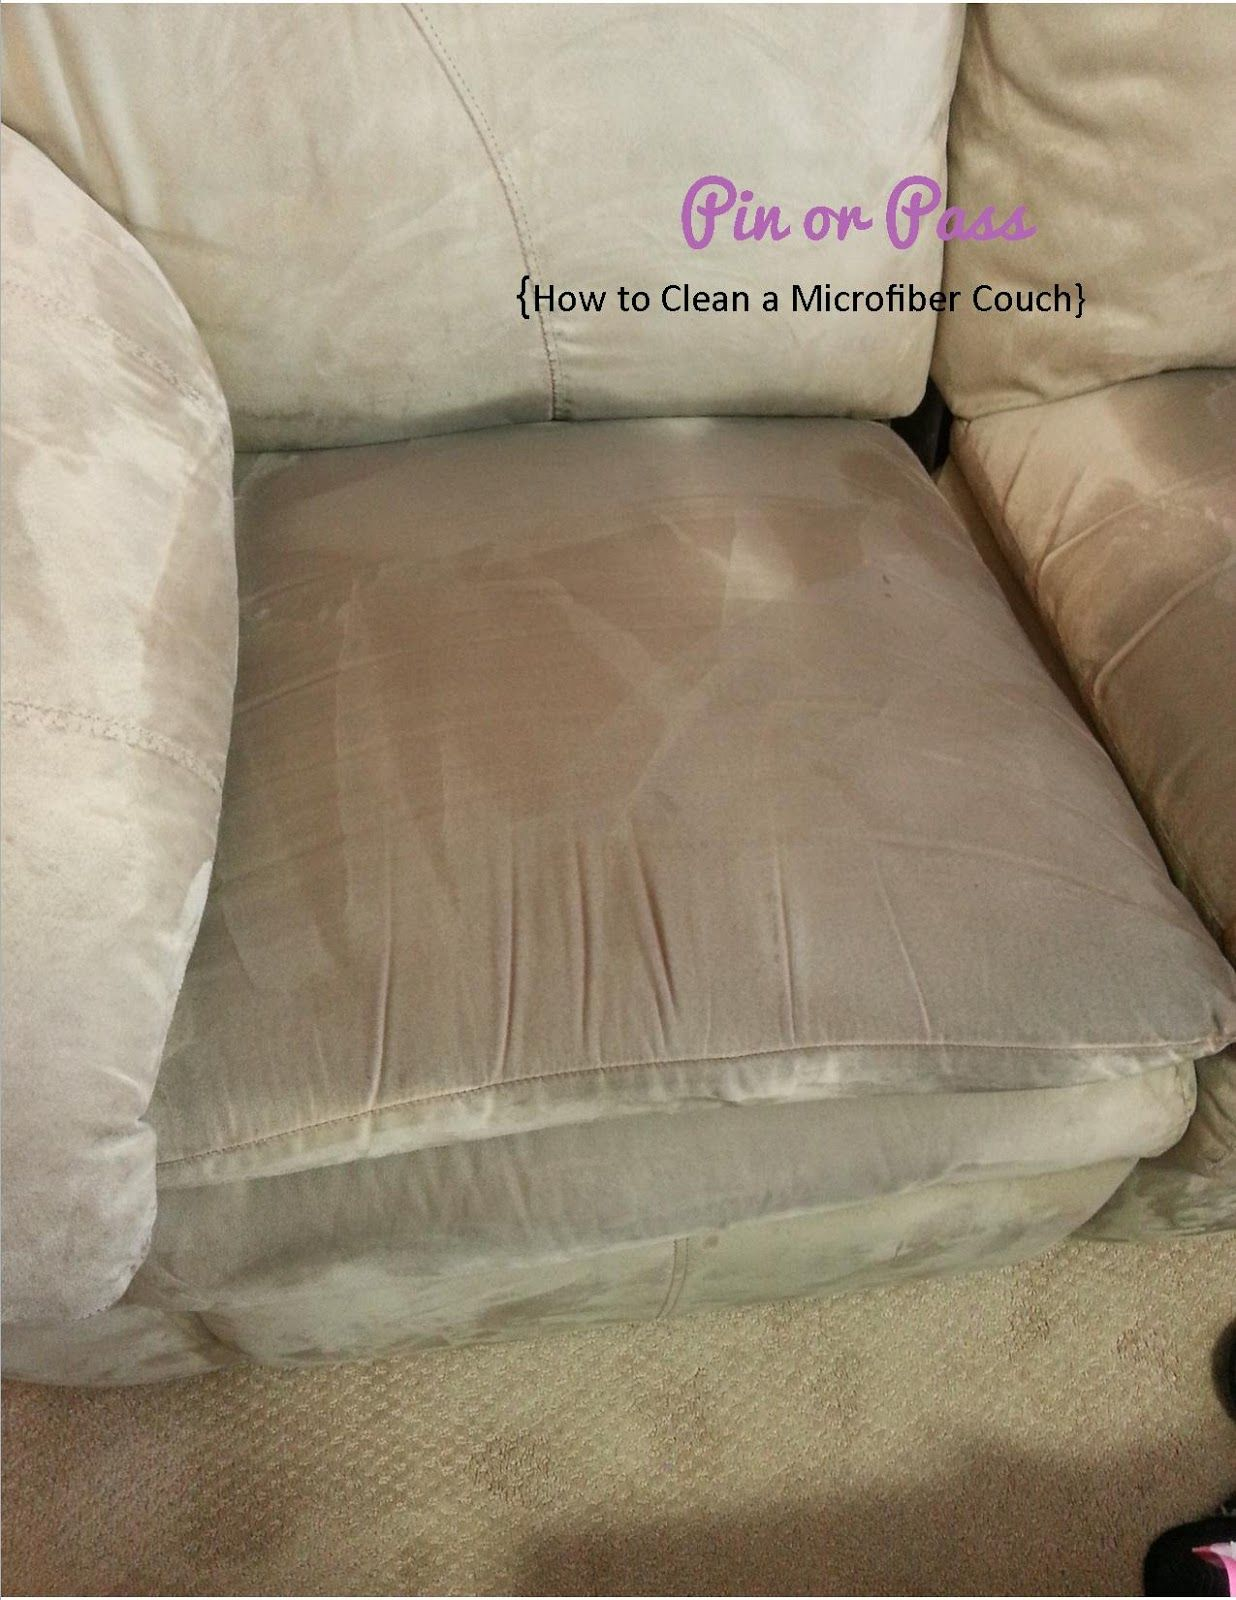 Enjoyable Cleaning A Microfiber Couch Remedies Microfiber Couch Gmtry Best Dining Table And Chair Ideas Images Gmtryco